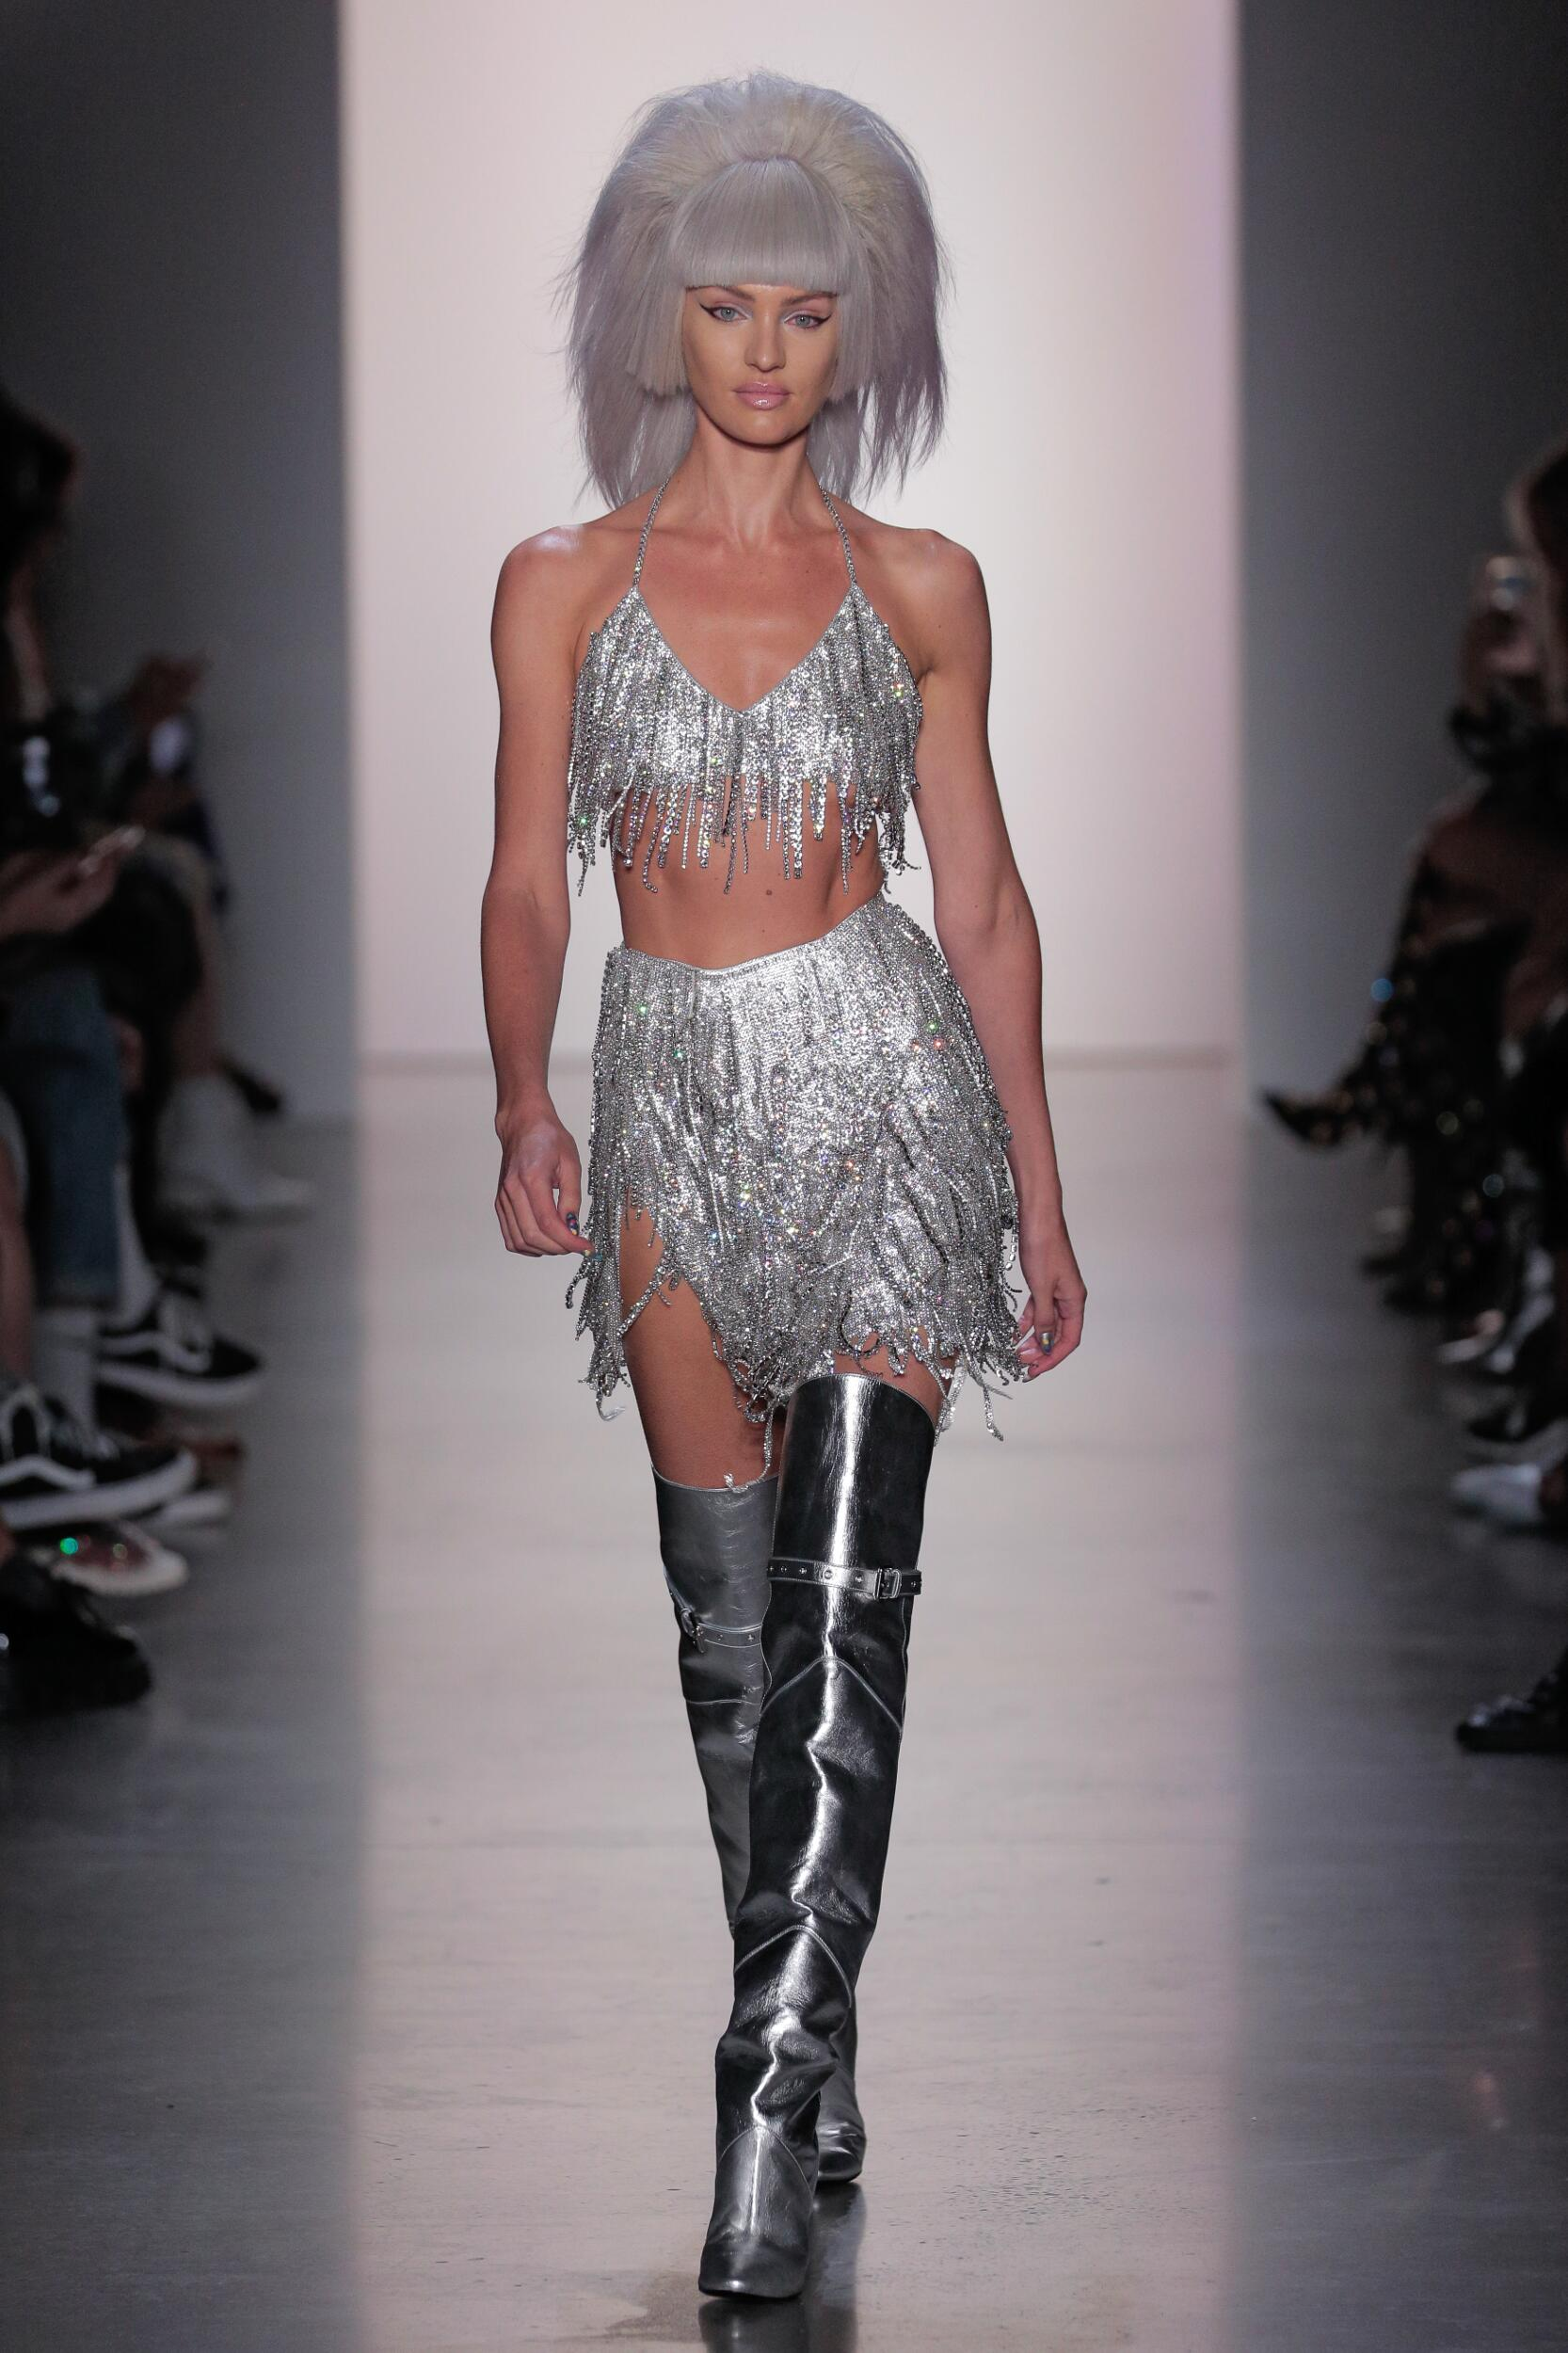 Jeremy Scott Womenswear Collection Trends